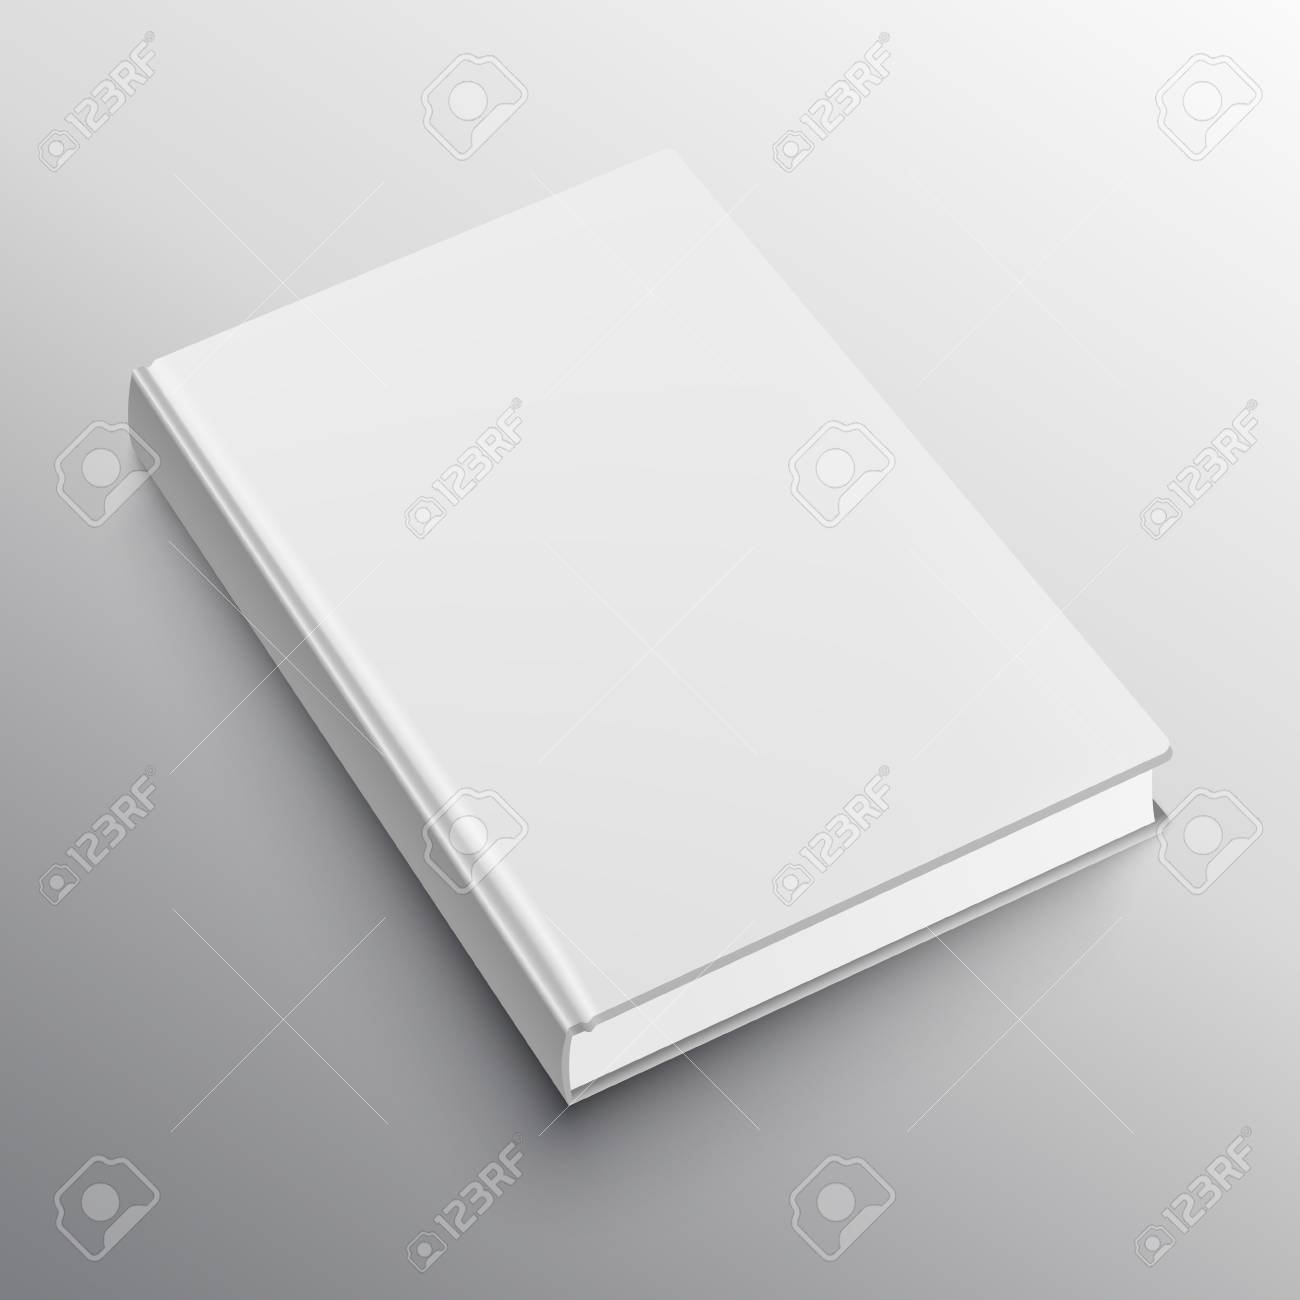 realistic book mockup template royalty free cliparts vectors and